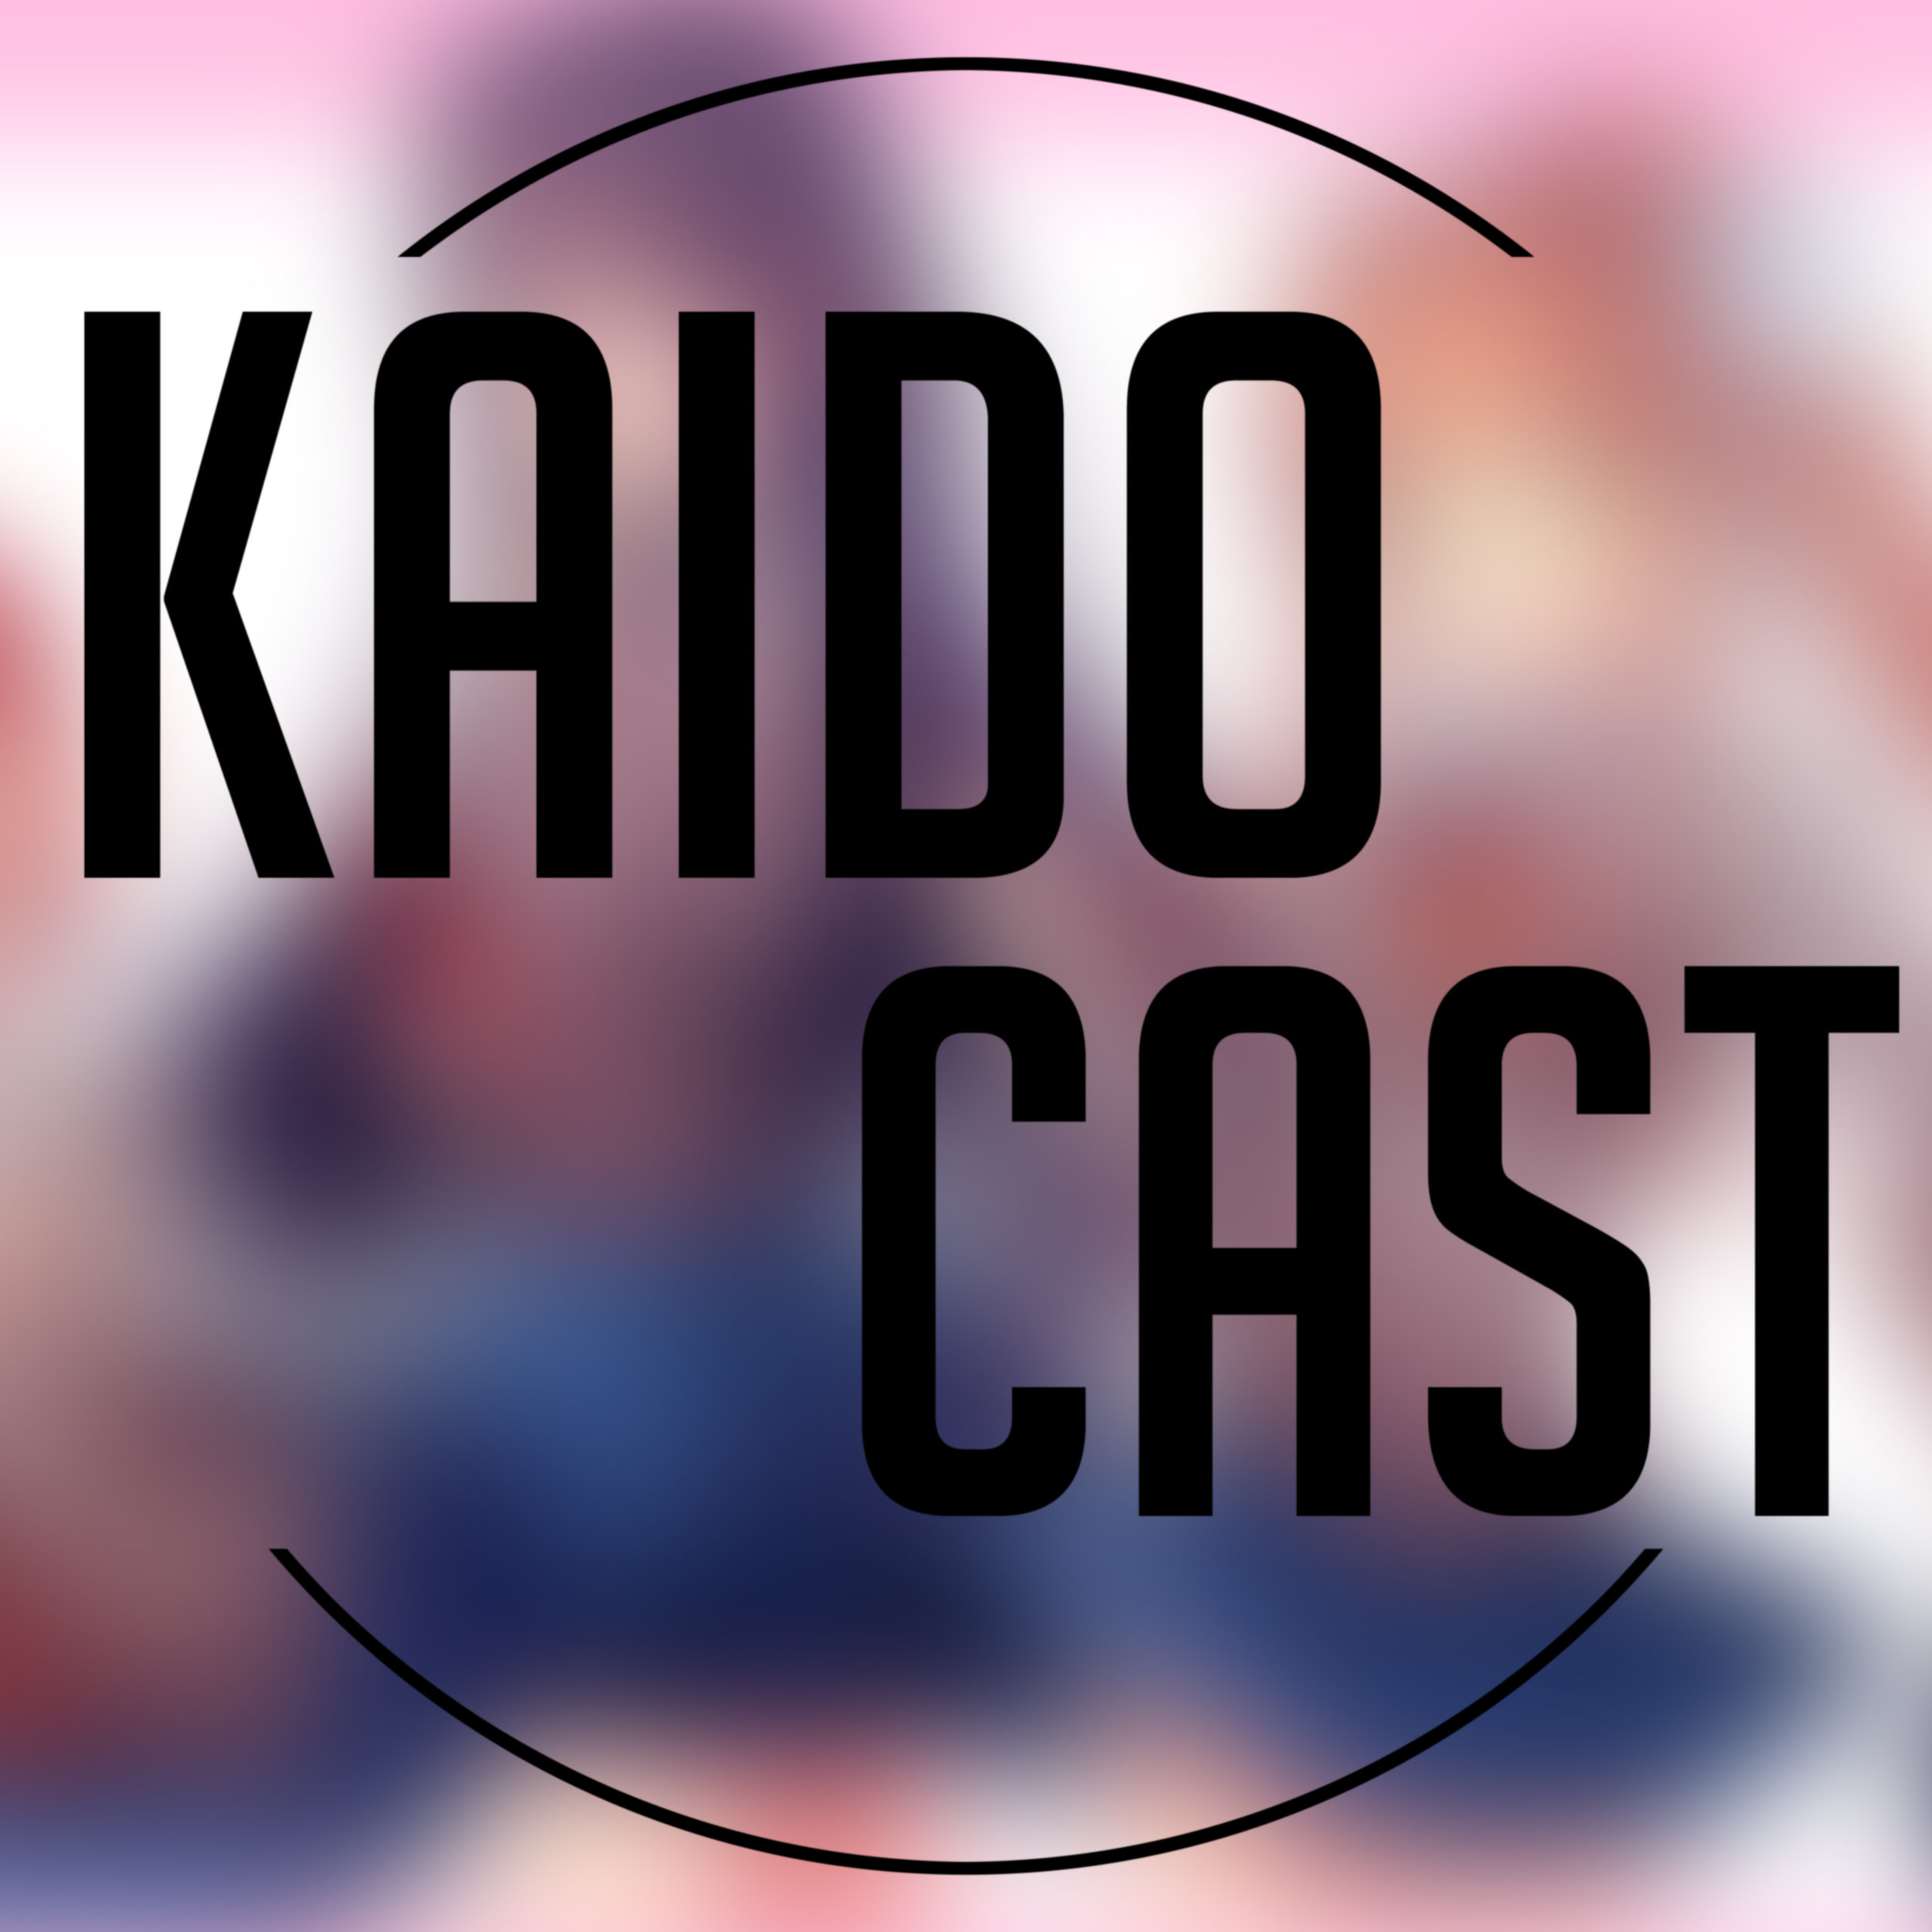 KAIDO Cast 20 - We Should Just Play Divinity - Dave and Zac embark on their Rob-less adventure one last time. Dave's interest in literature has lead him to an interesting place, and Zac fights the old fight.